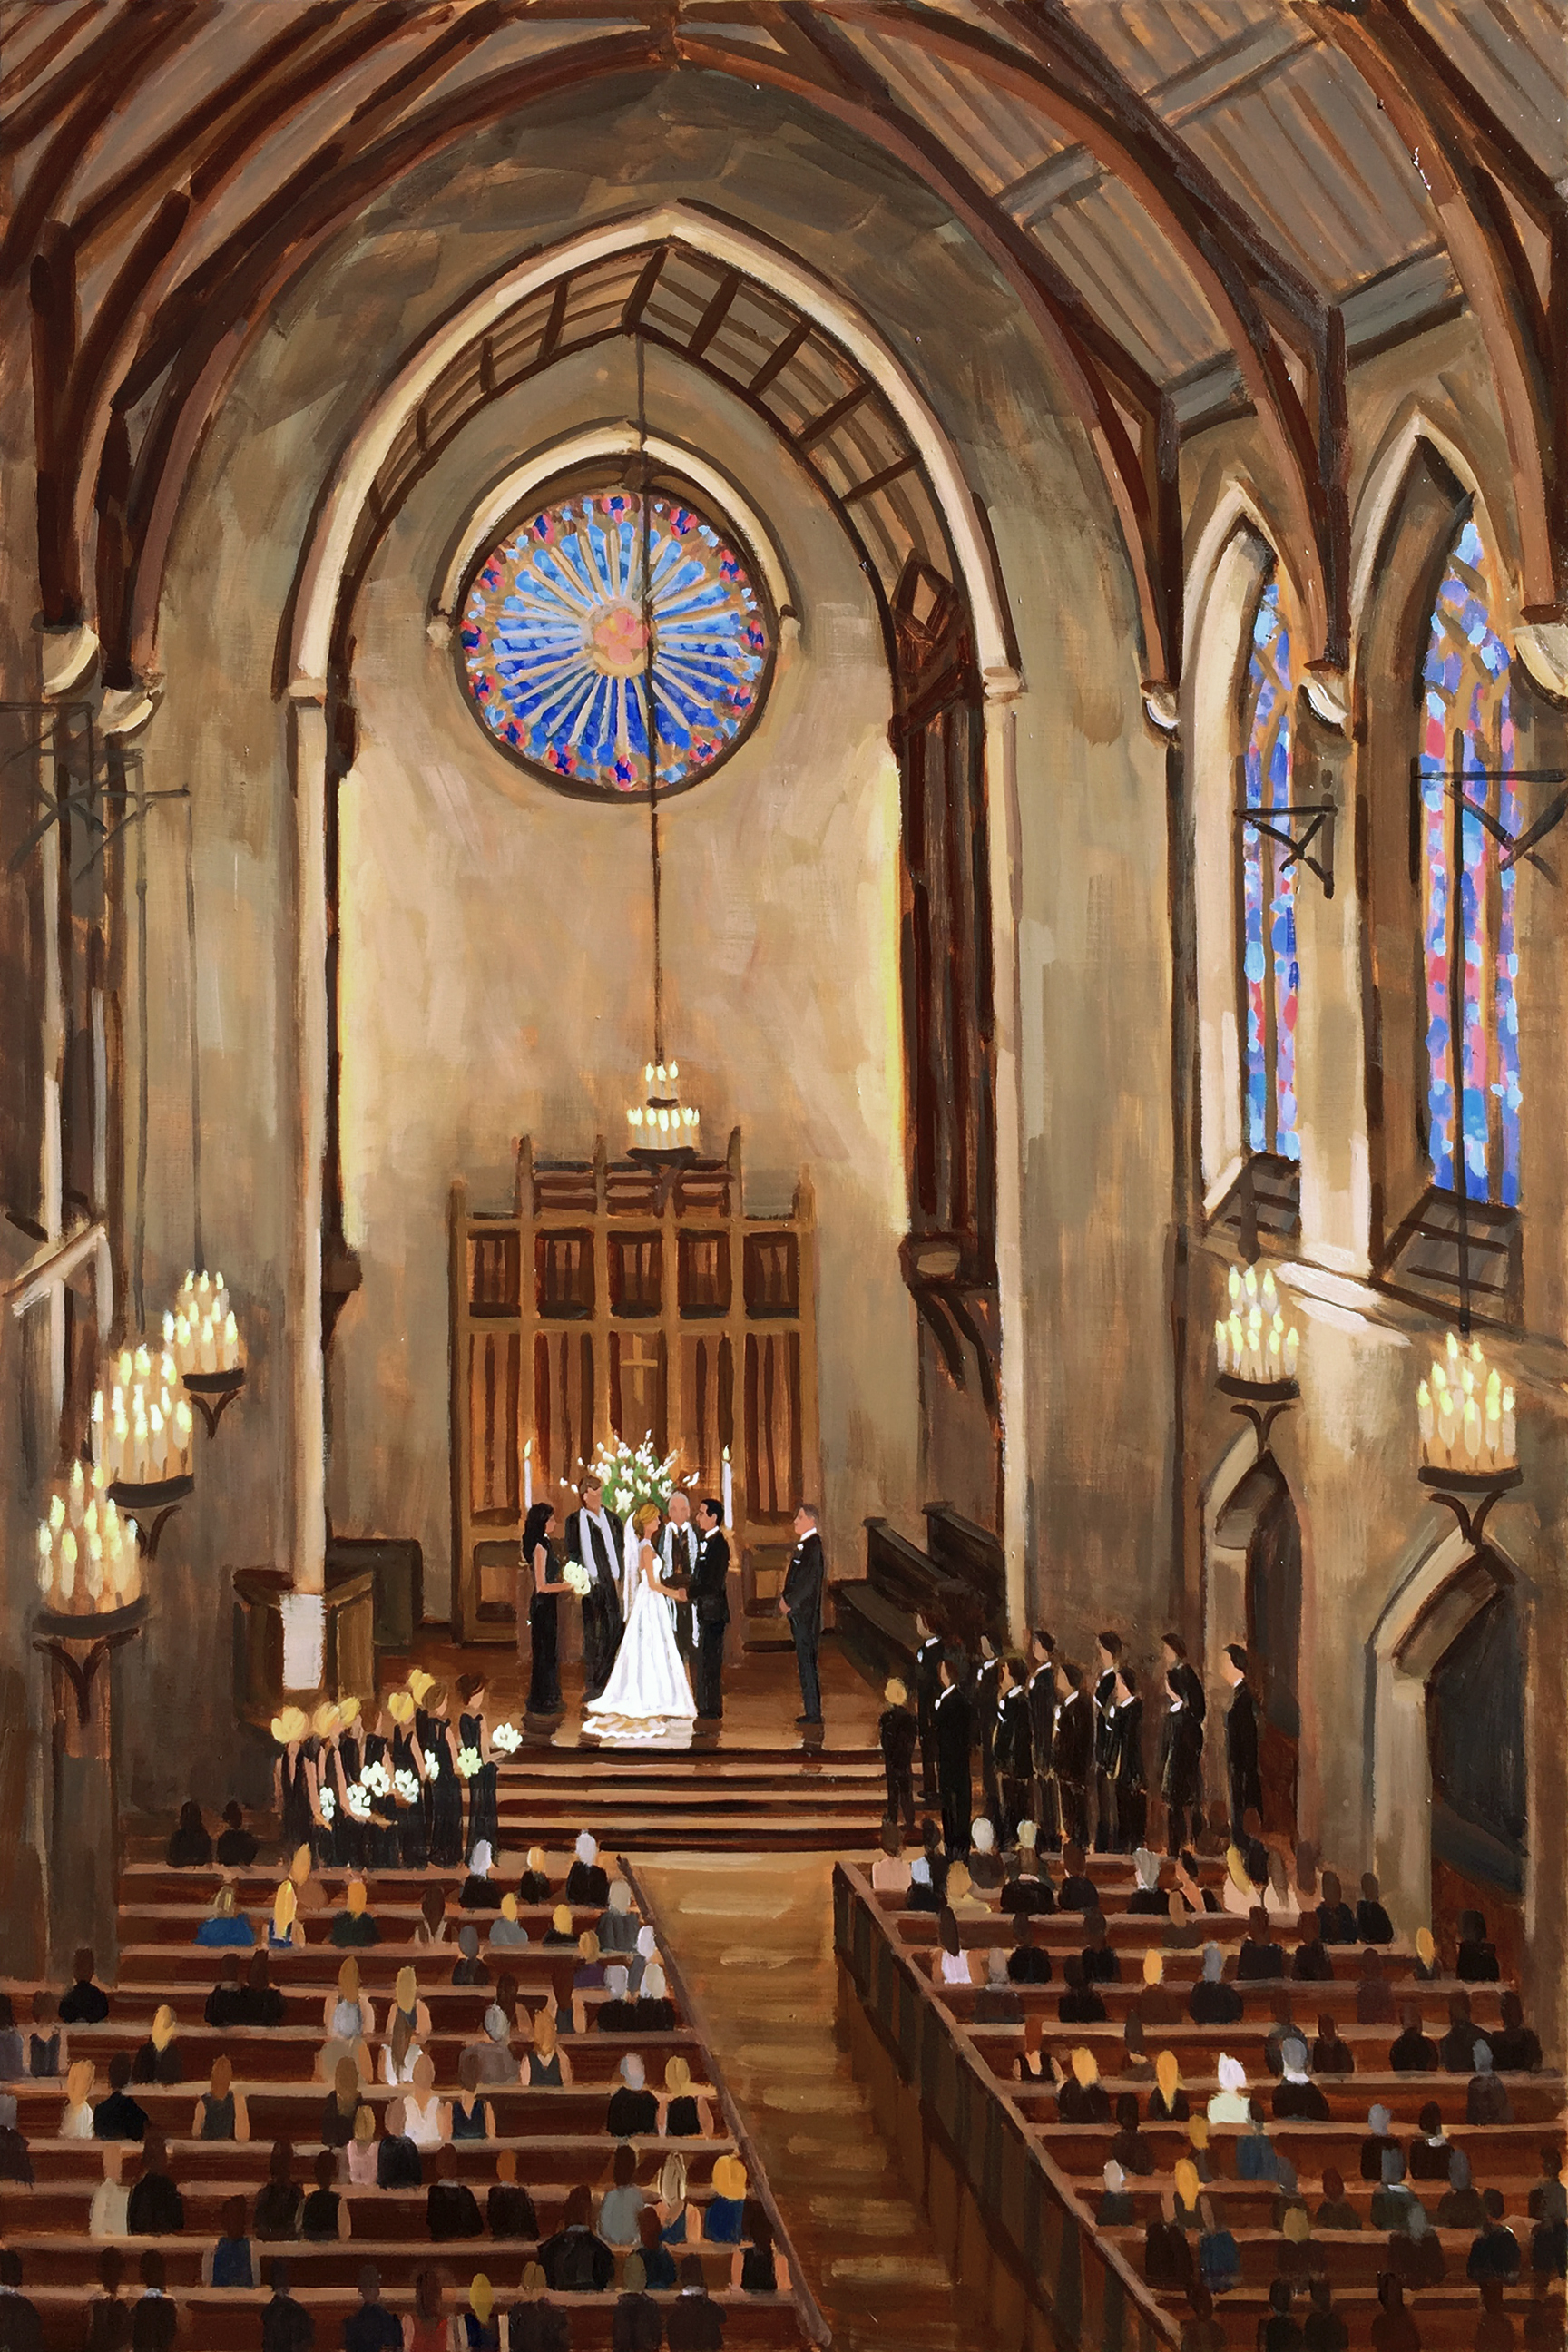 Sarah and Will | 36 x 24 in. Live Wedding Painting